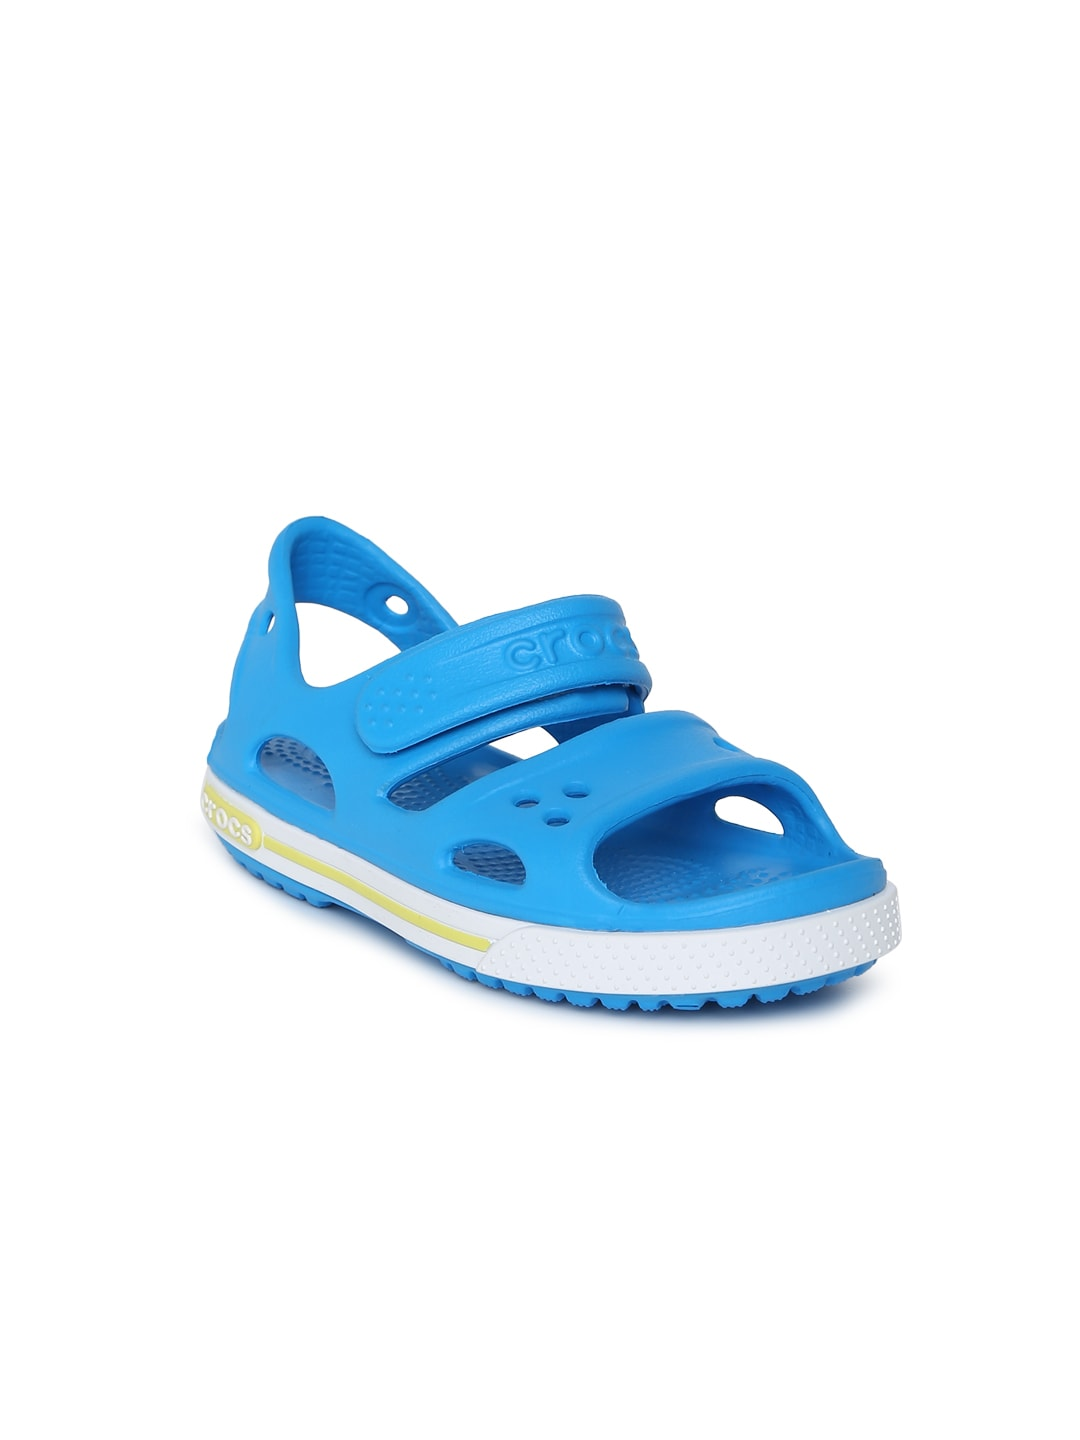 Crocs Boys Blue Comfort Sandals